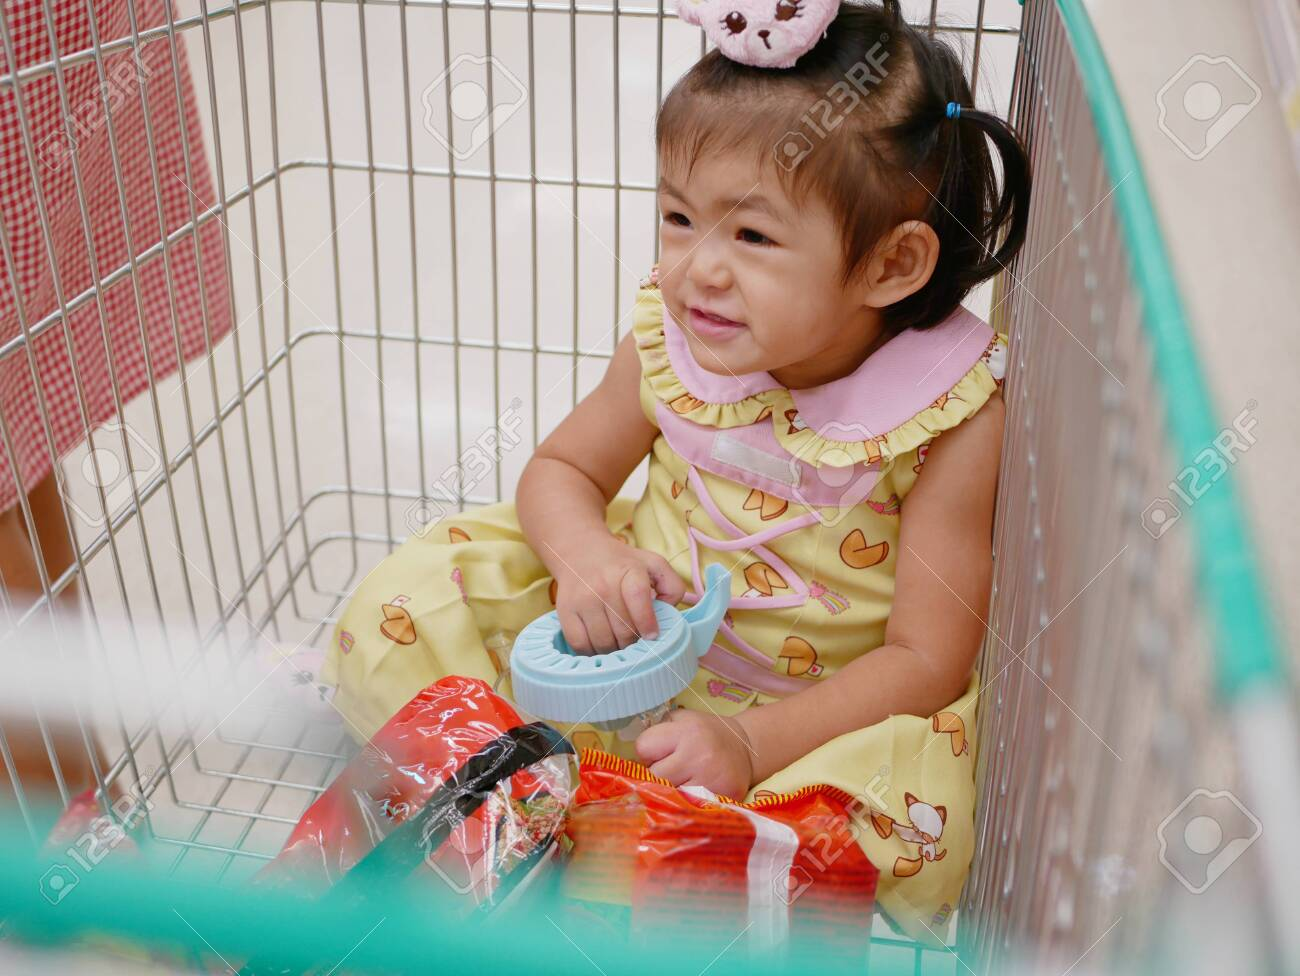 Little Asian baby girl sits in a cart, enjoys doing shopping with her mother - doing errands with toddler - 129808057